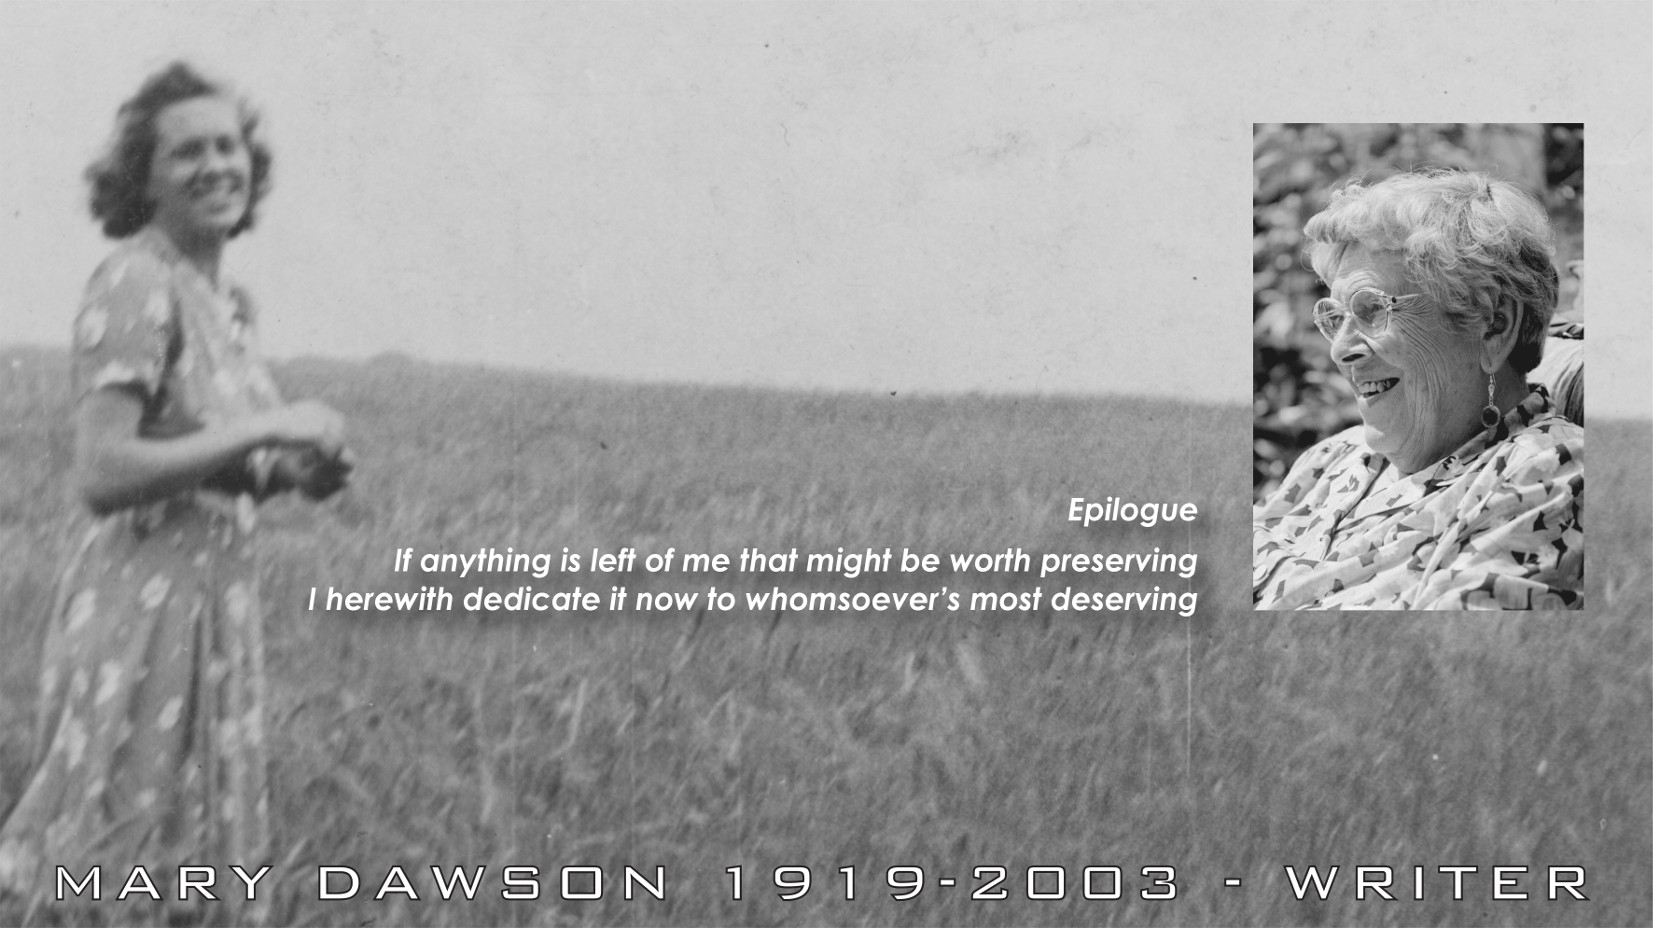 Epilogue. Mary Dawson Jeffries 1919-2003. If anything is left of me that might be worth preserving, I herewith dedicate it now to whomsoever's most deserving. Epilogue by Mary Dawson Jeffries UK.